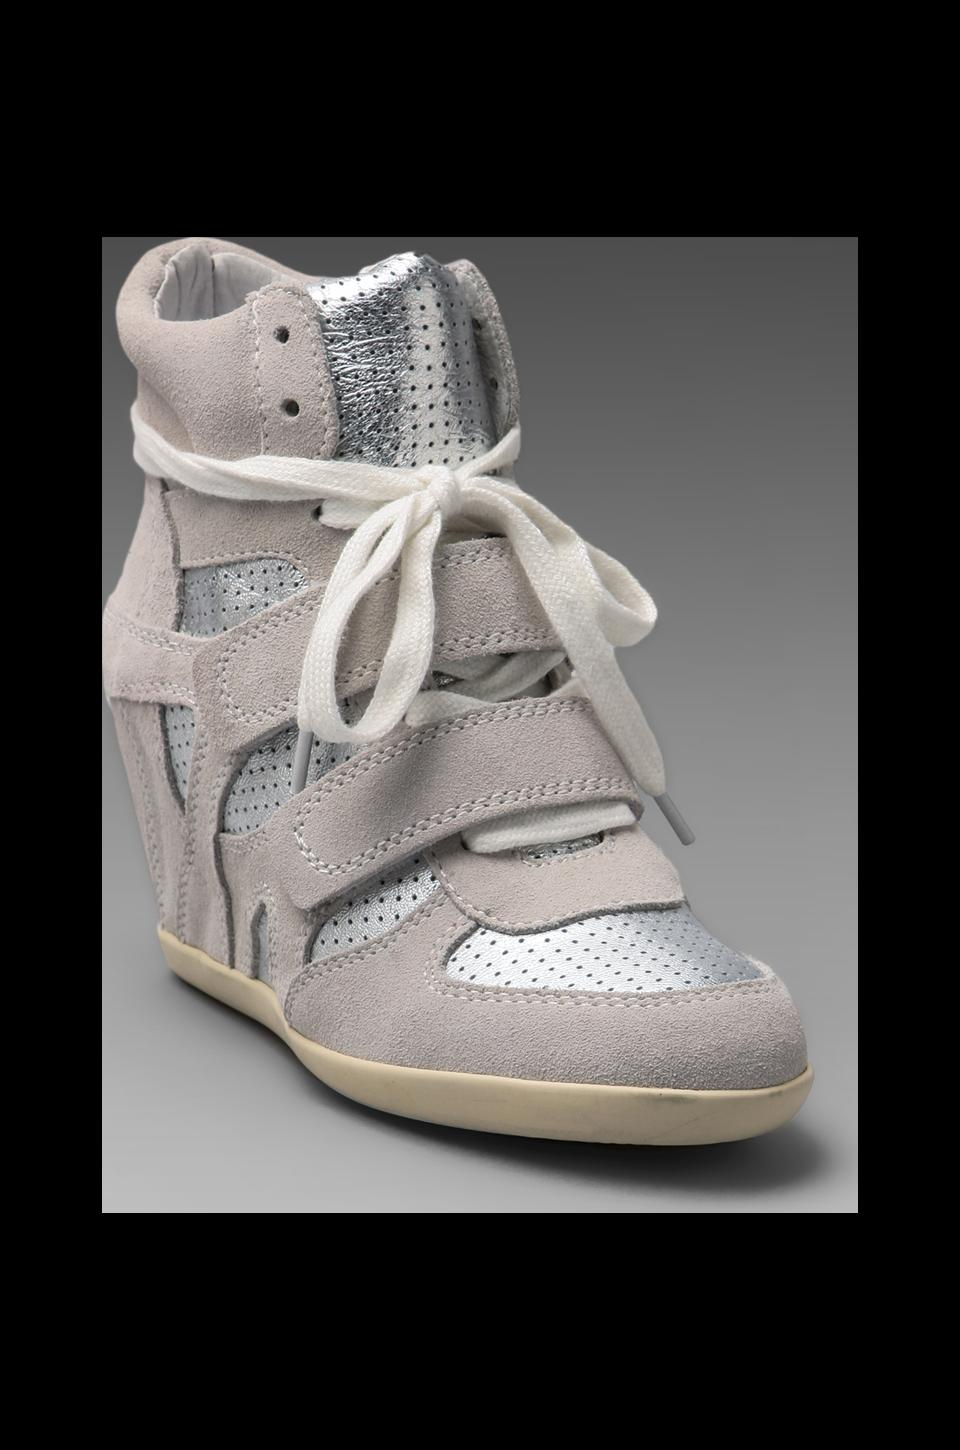 Ash Bea Wedge Sneaker in White/Silver